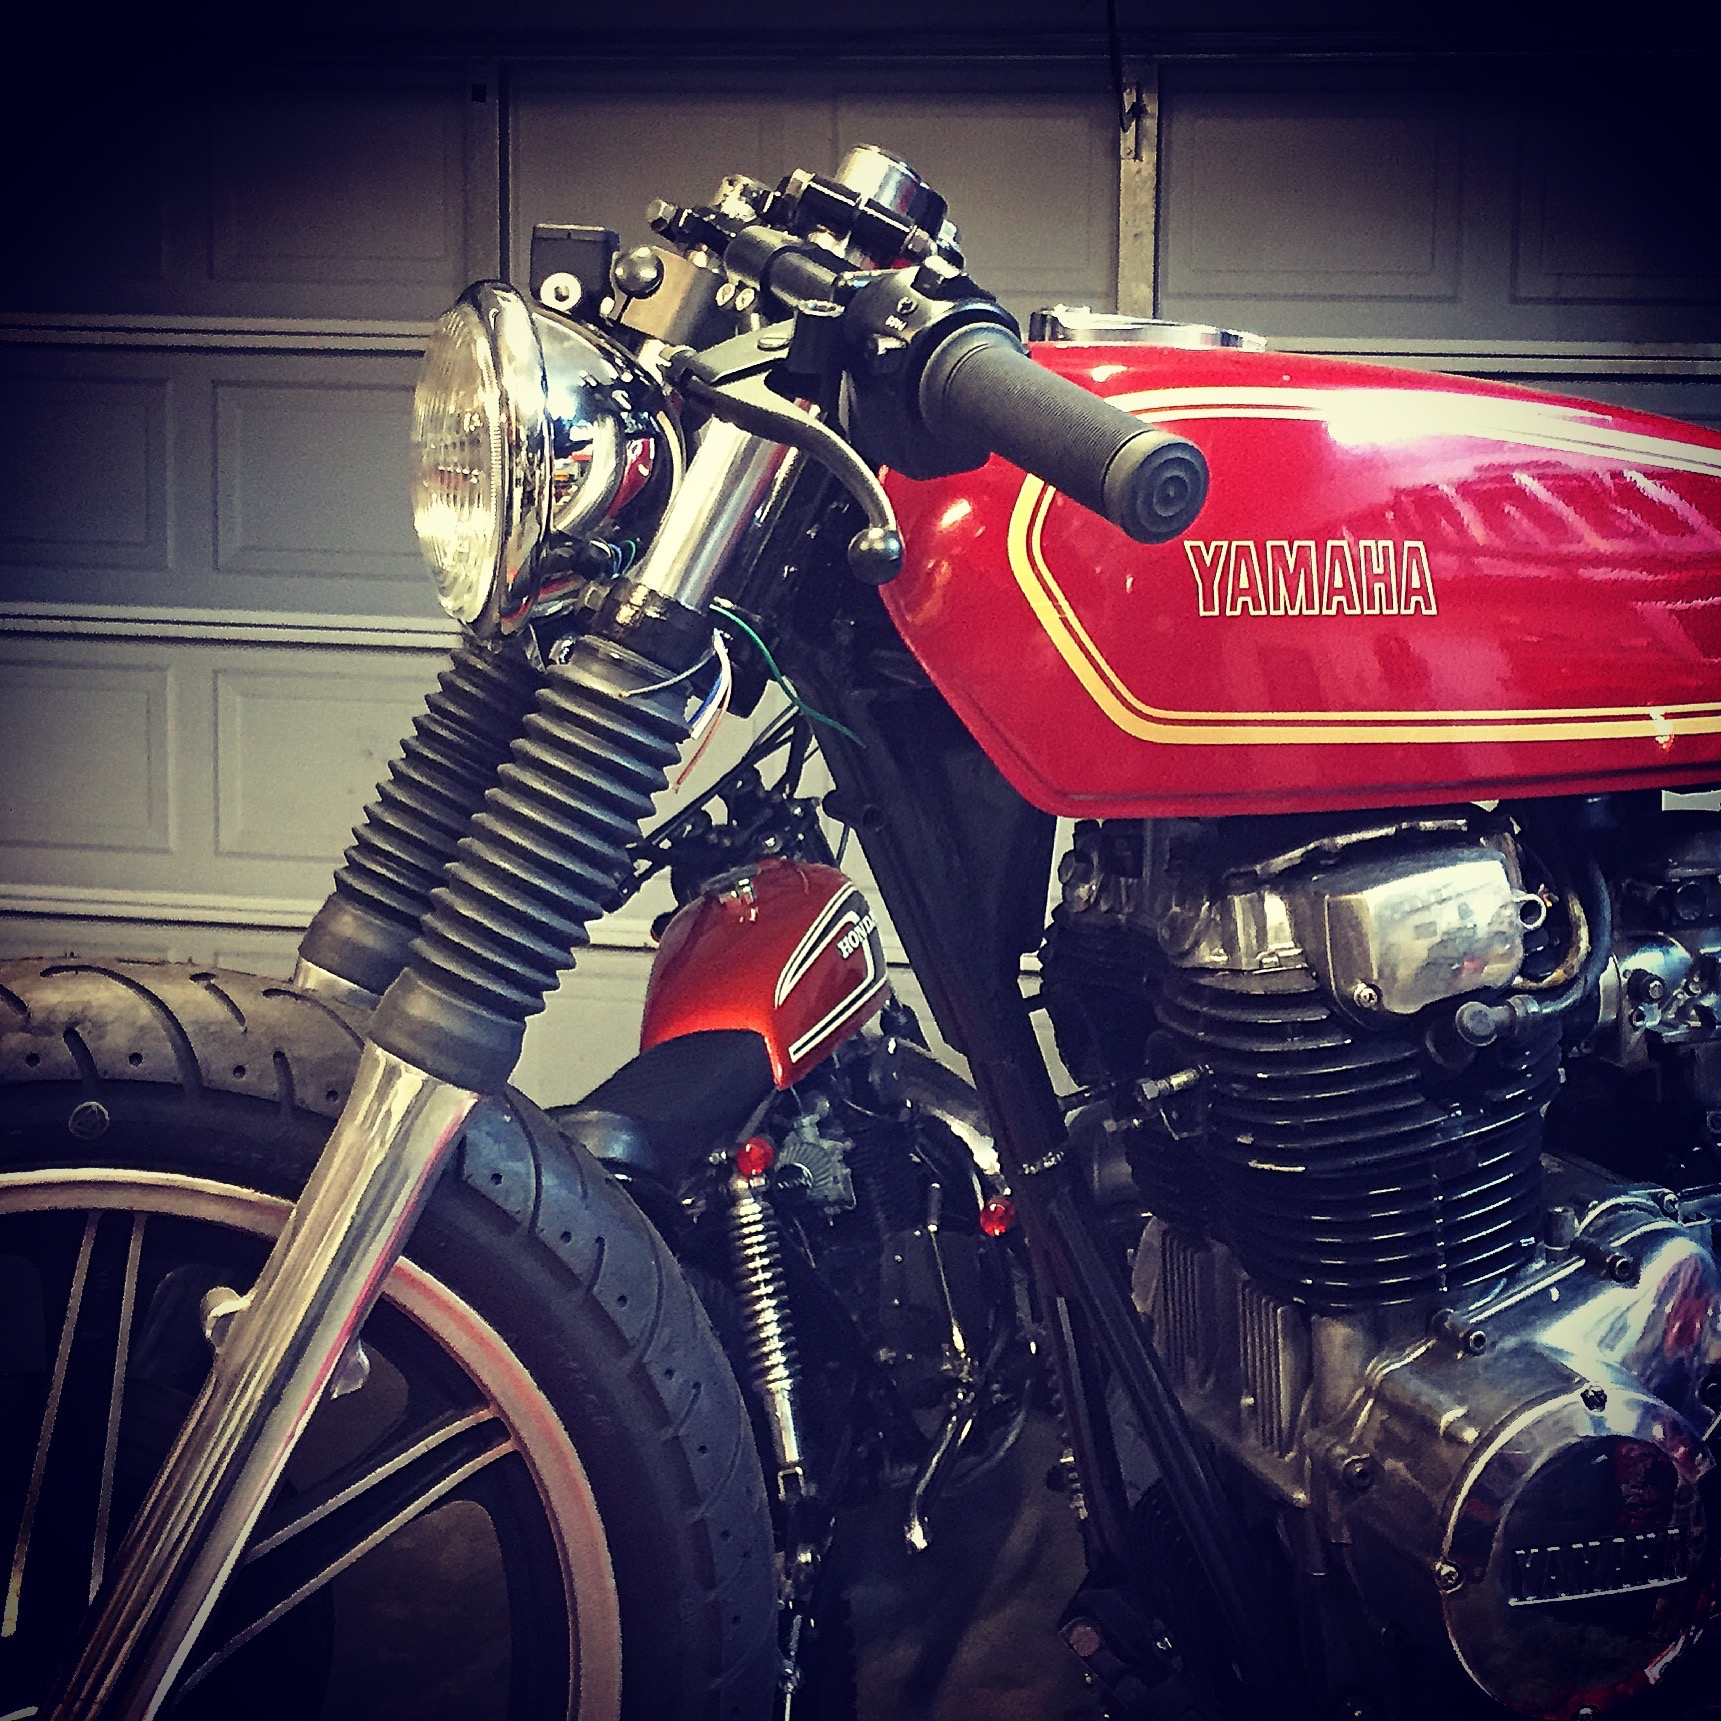 We had an old Honda SL350 headlight bucket laying around. On a whim I set it between the forks and fell in love with how it looked. With custom bracket we were able to tuck it in with a bottom mount. It instantly made the bike look mean!